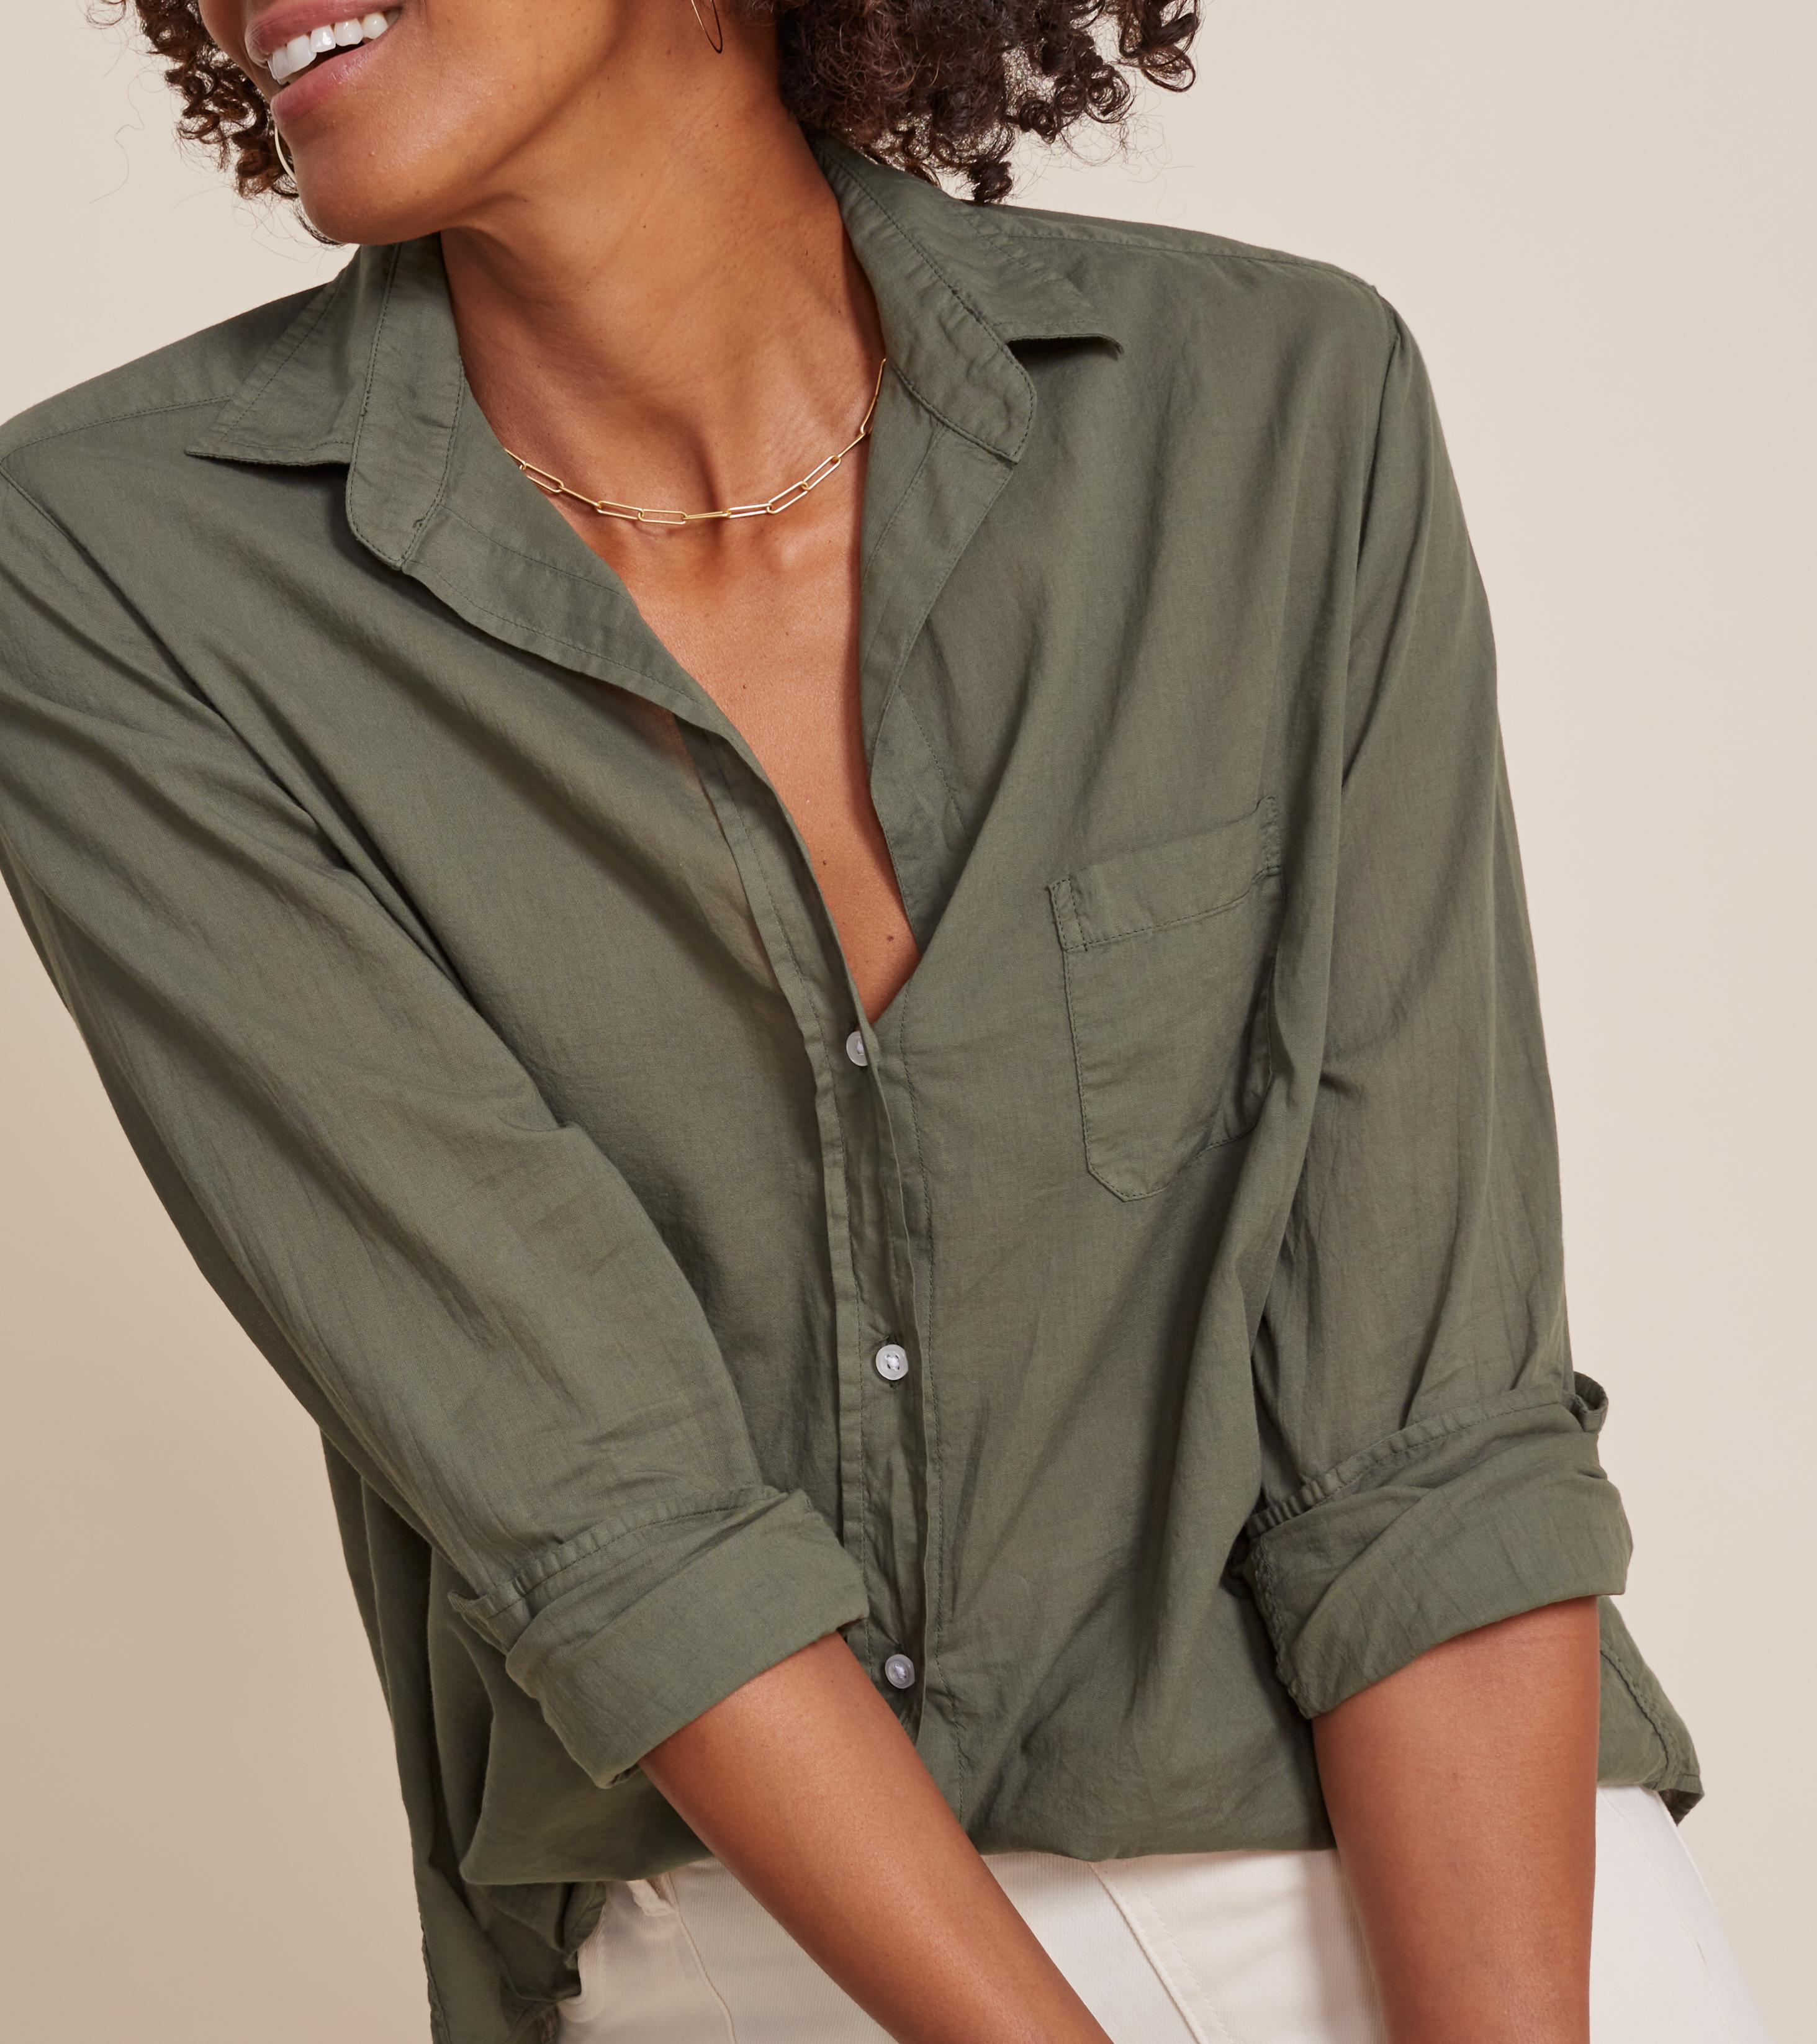 The Hero Button-Up Shirt Army Green, Tissue Cotton